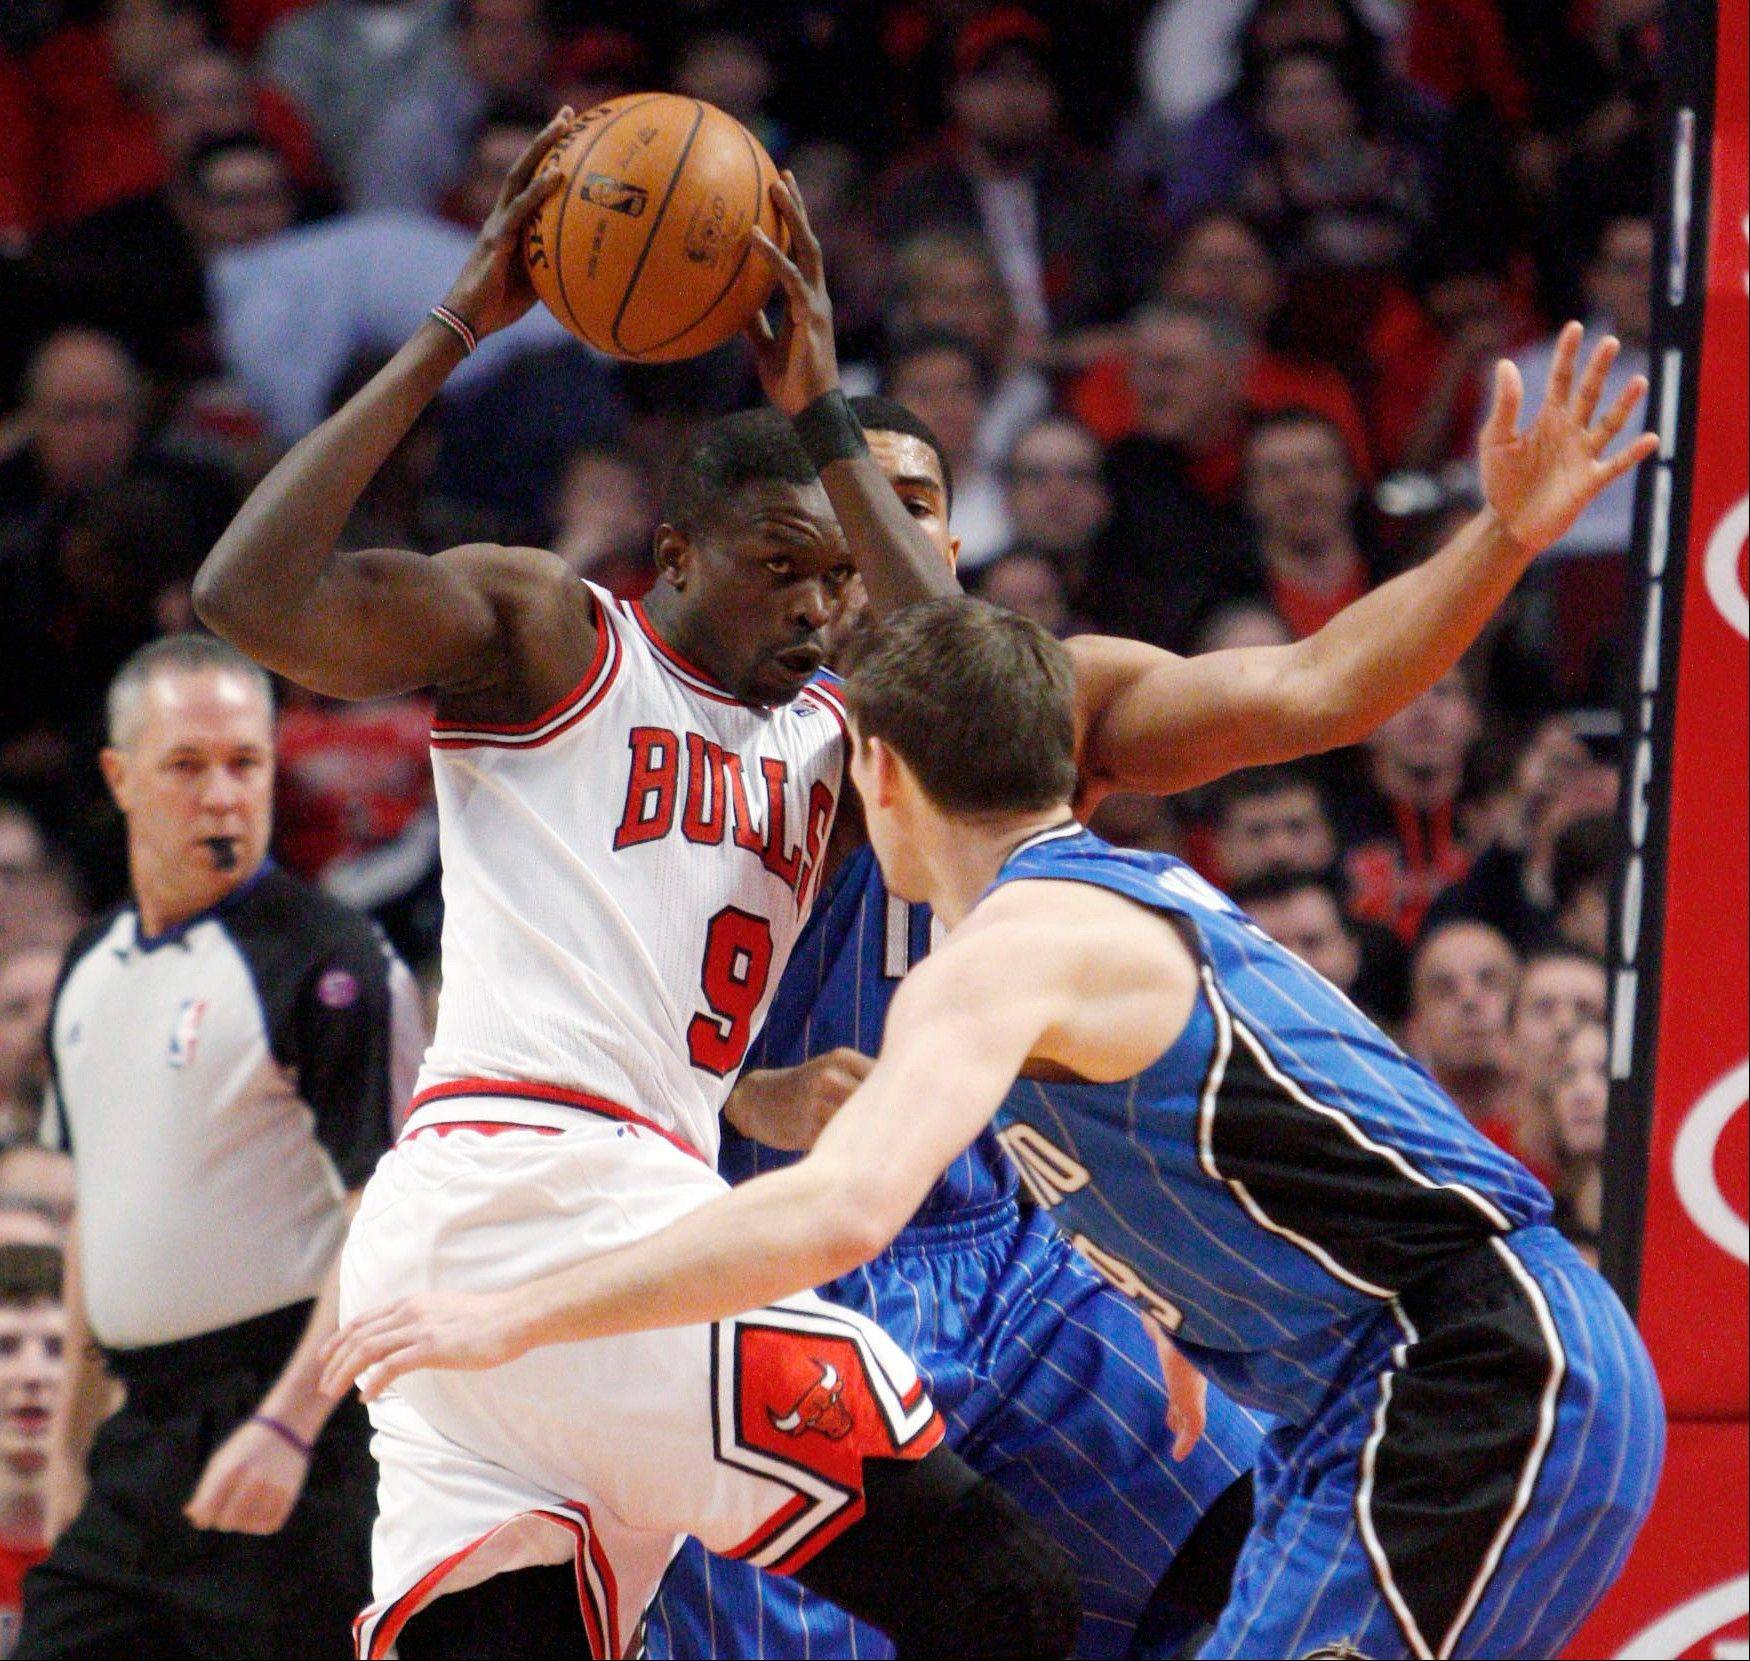 Chicago Bulls' Luol Deng drives between Orlando Magic's Beno Udrih, front, and Tobias Harris during the first half of an NBA basketball game Friday, April 5, 2013, in Chicago. (AP Photo/Charles Cherney)